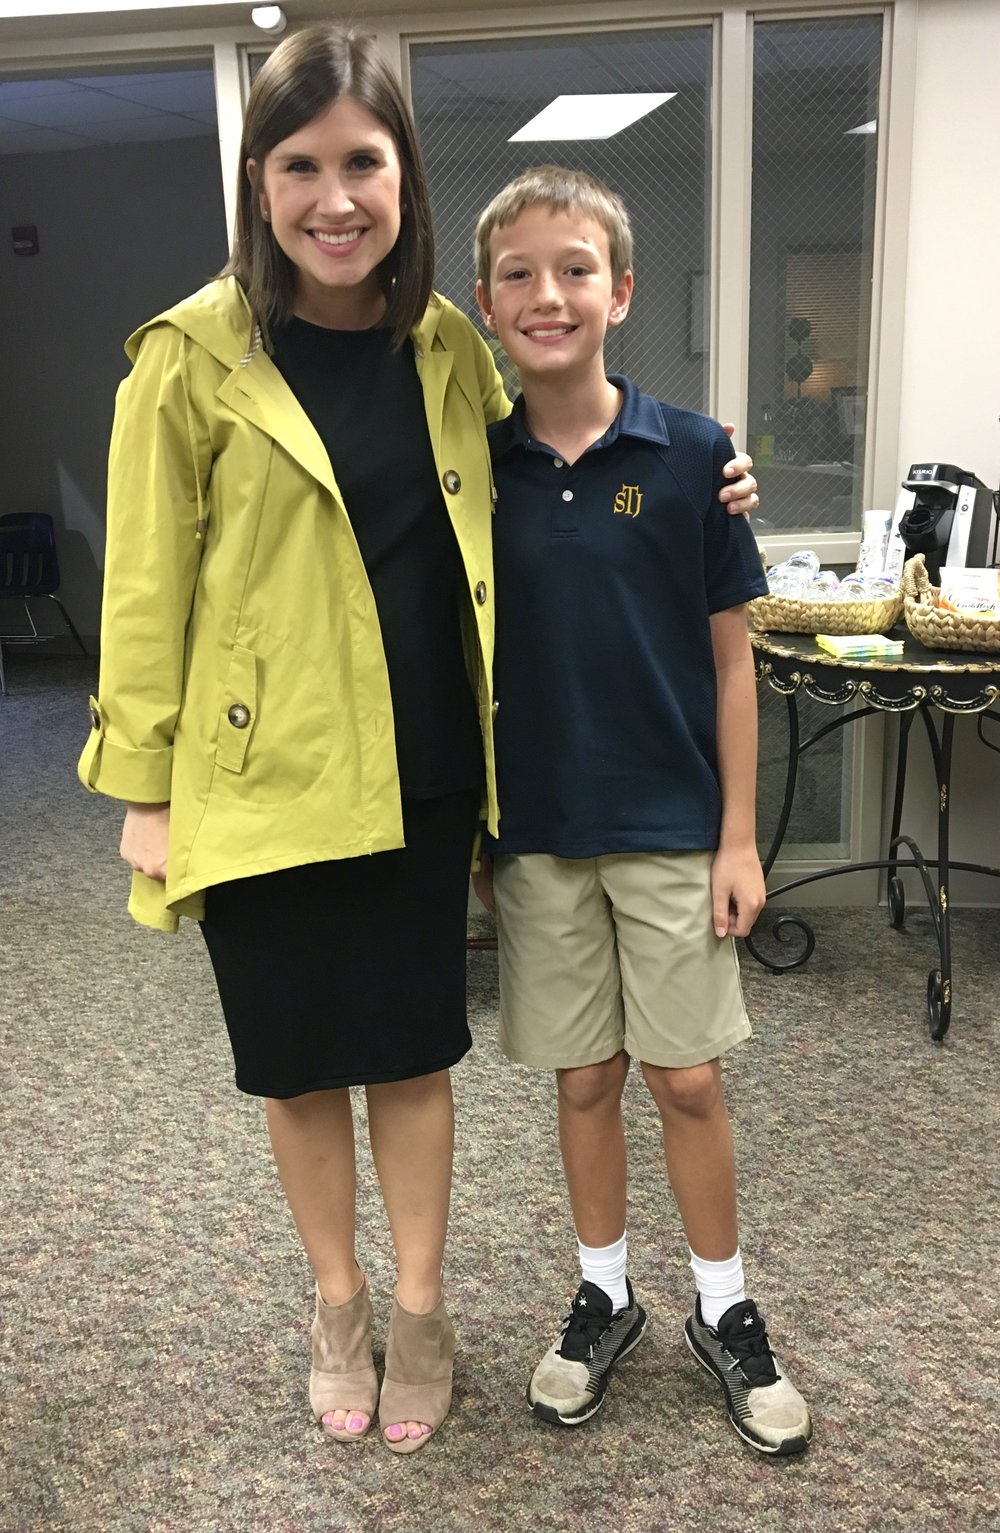 Easton Selbee, STJ 4th grader, with our Associate Dean of Admissions, Kate Bartlett